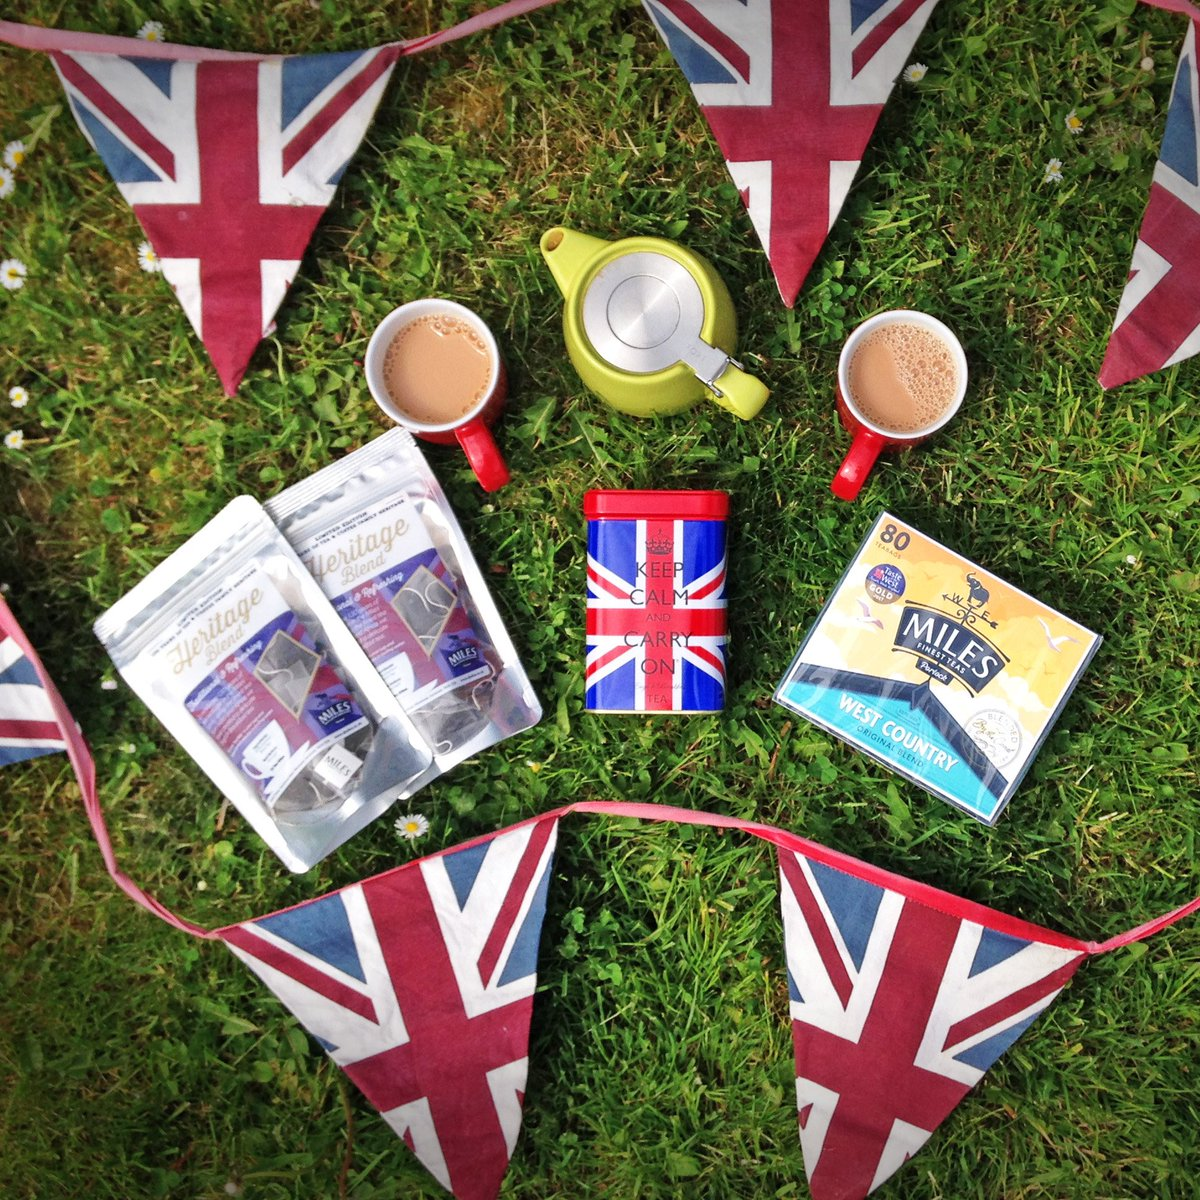 WIN tea fit for Royal-TEA!   RT&amp;F to enter and celebrate the #RoyalWedding !   We will be giving away a Stump #Teapot, Heritage Blend #Tea &amp; Tin to celebrate the special day.    T&amp;C&#39;s: teapot colour may vary, winner selected 22.05.18. #Royal #WestCountry #England<br>http://pic.twitter.com/jfUIQ9XkxL